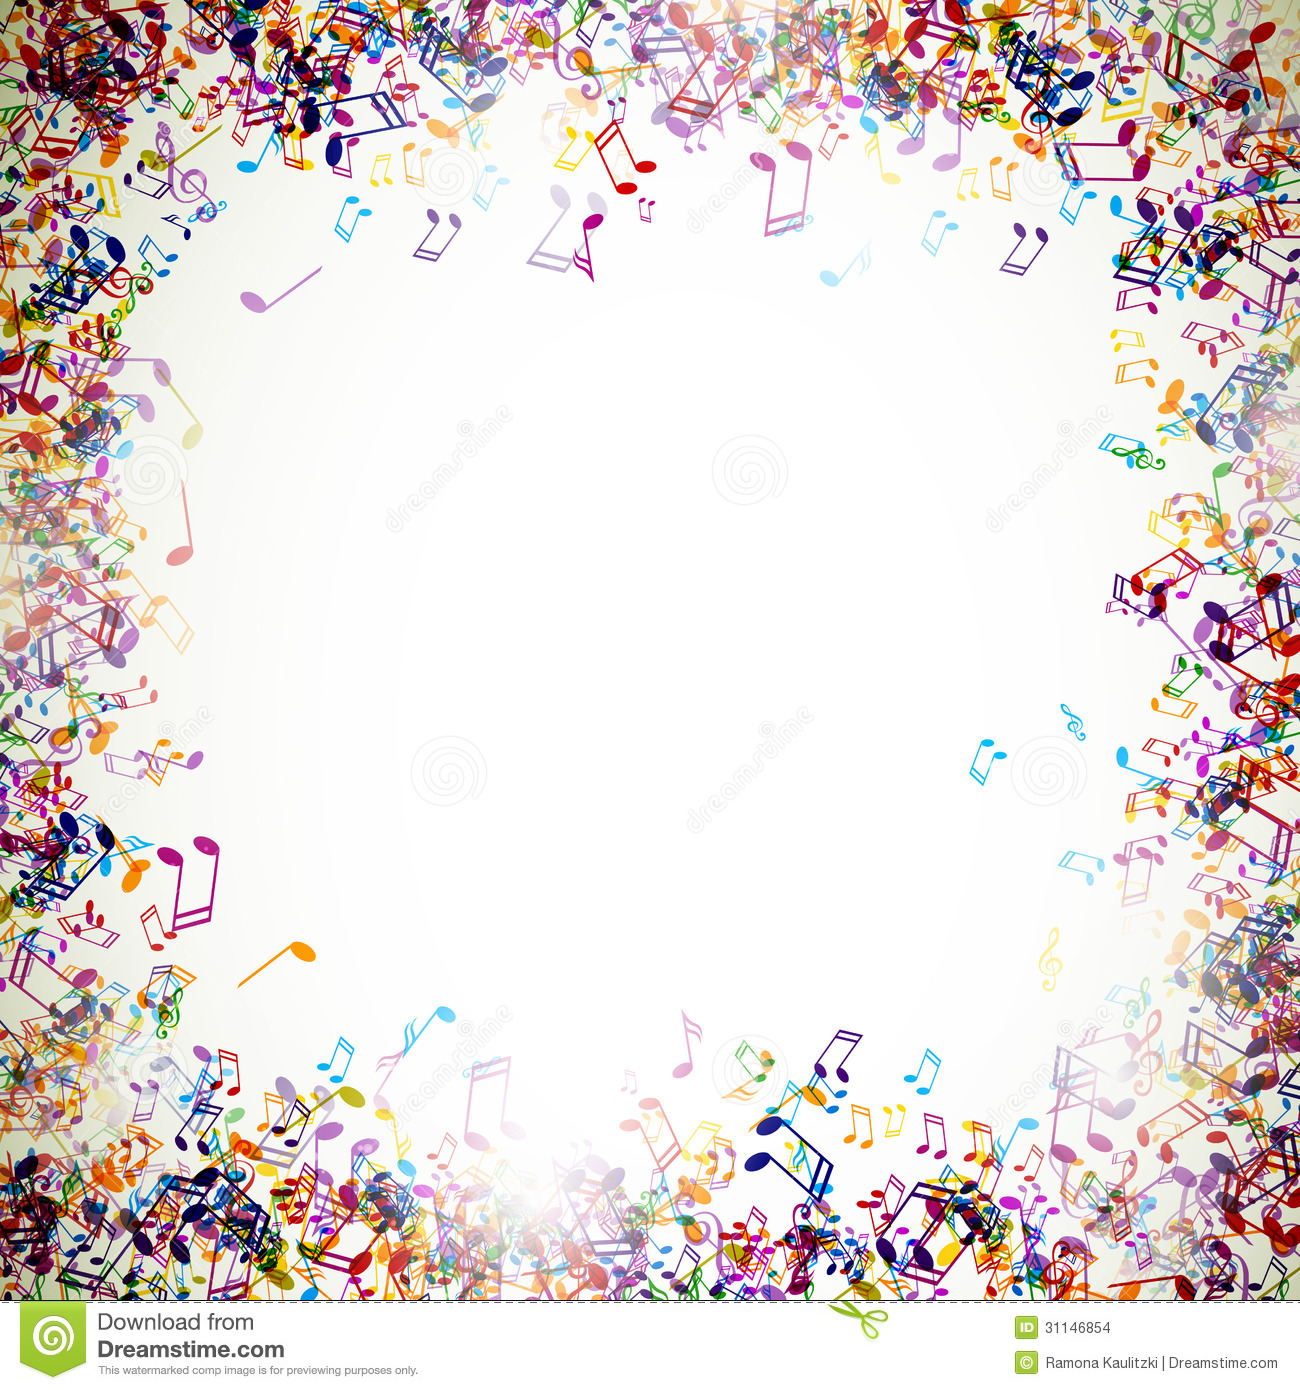 Colorful Musicnotes Stock Images - Image: 31146854